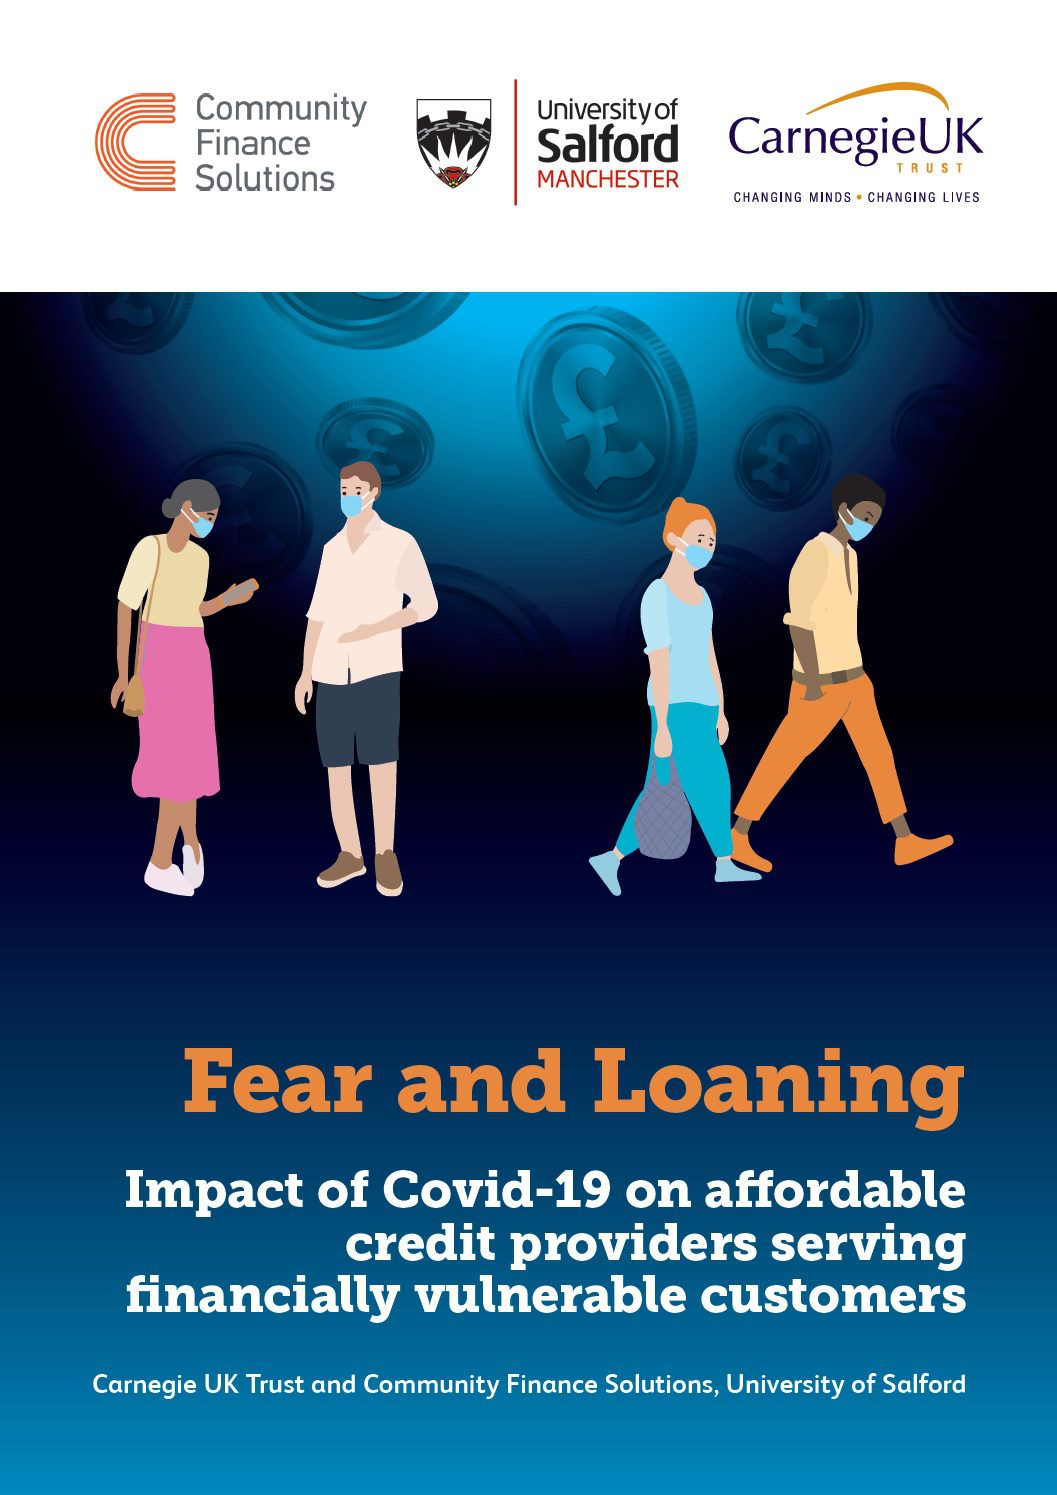 Fear and Loaning – The Impact of Covid-19 on affordable credit providers serving financially vulnerable customers